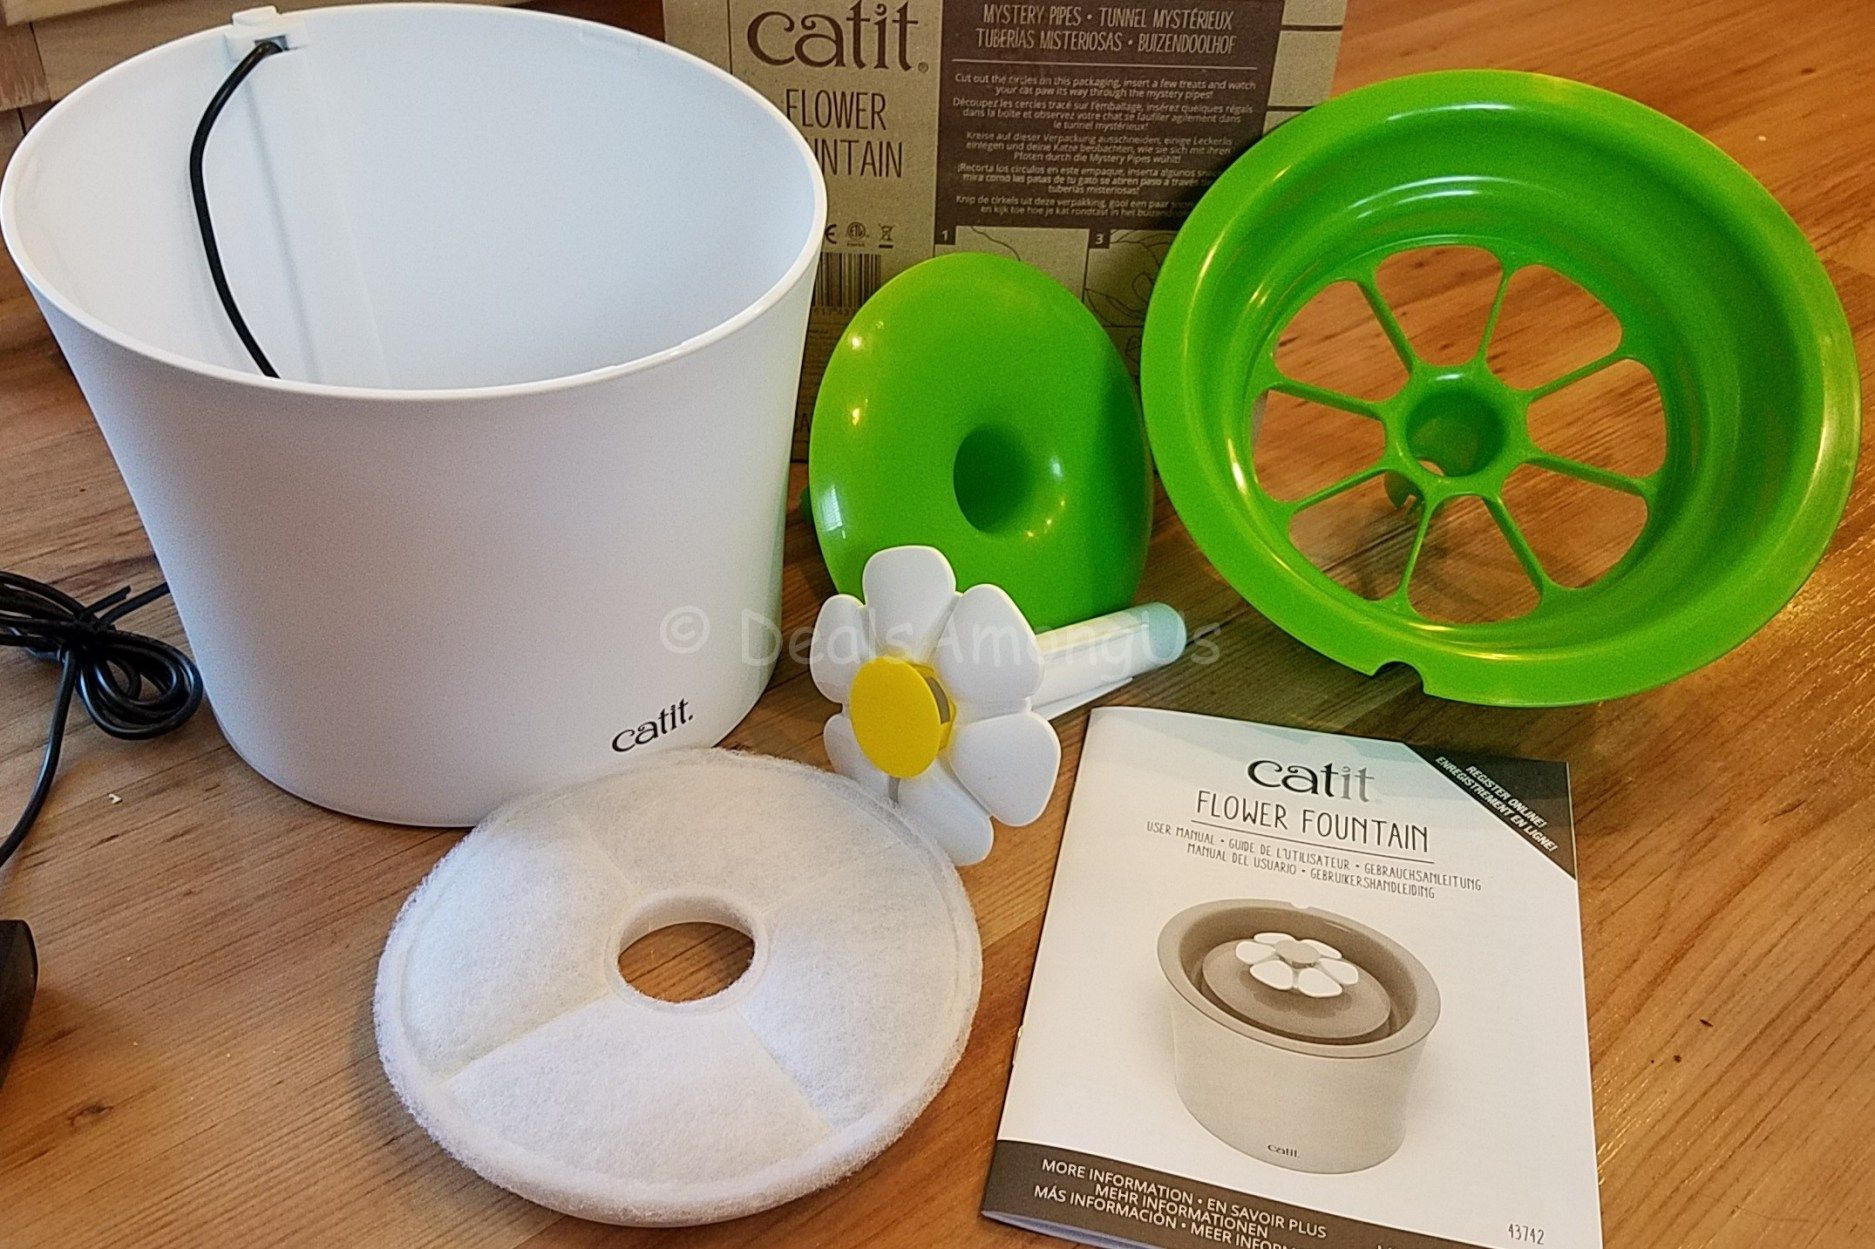 Catit flower drinking fountain review drinking fountain